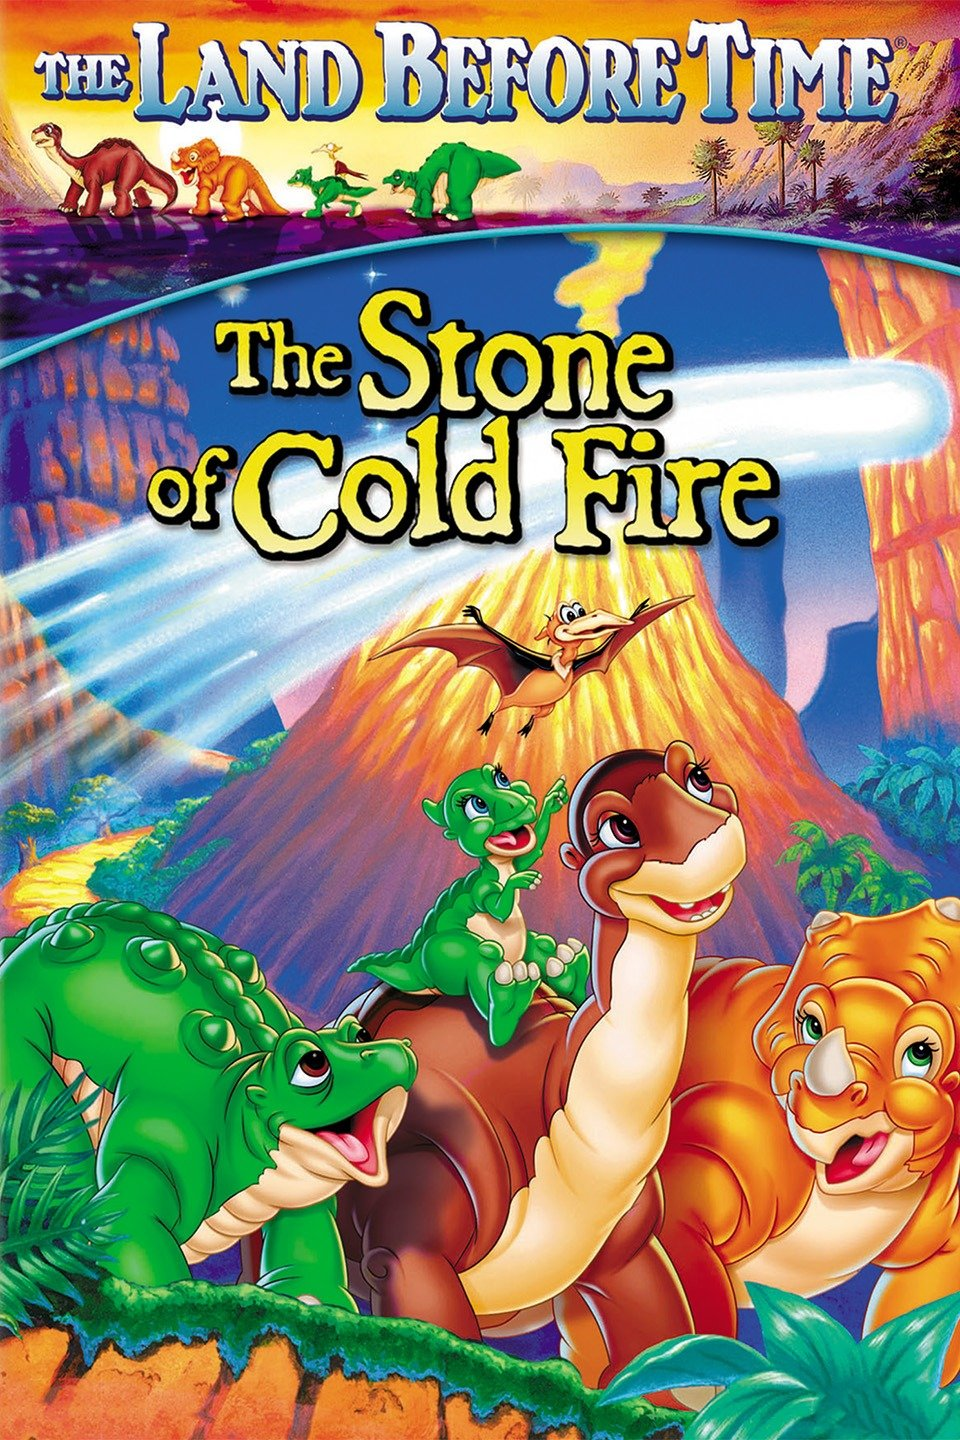 10 Kitchen And Home Decor Items Every 20 Something Needs: The Land Before Time VII: The Stone Of Cold Fire